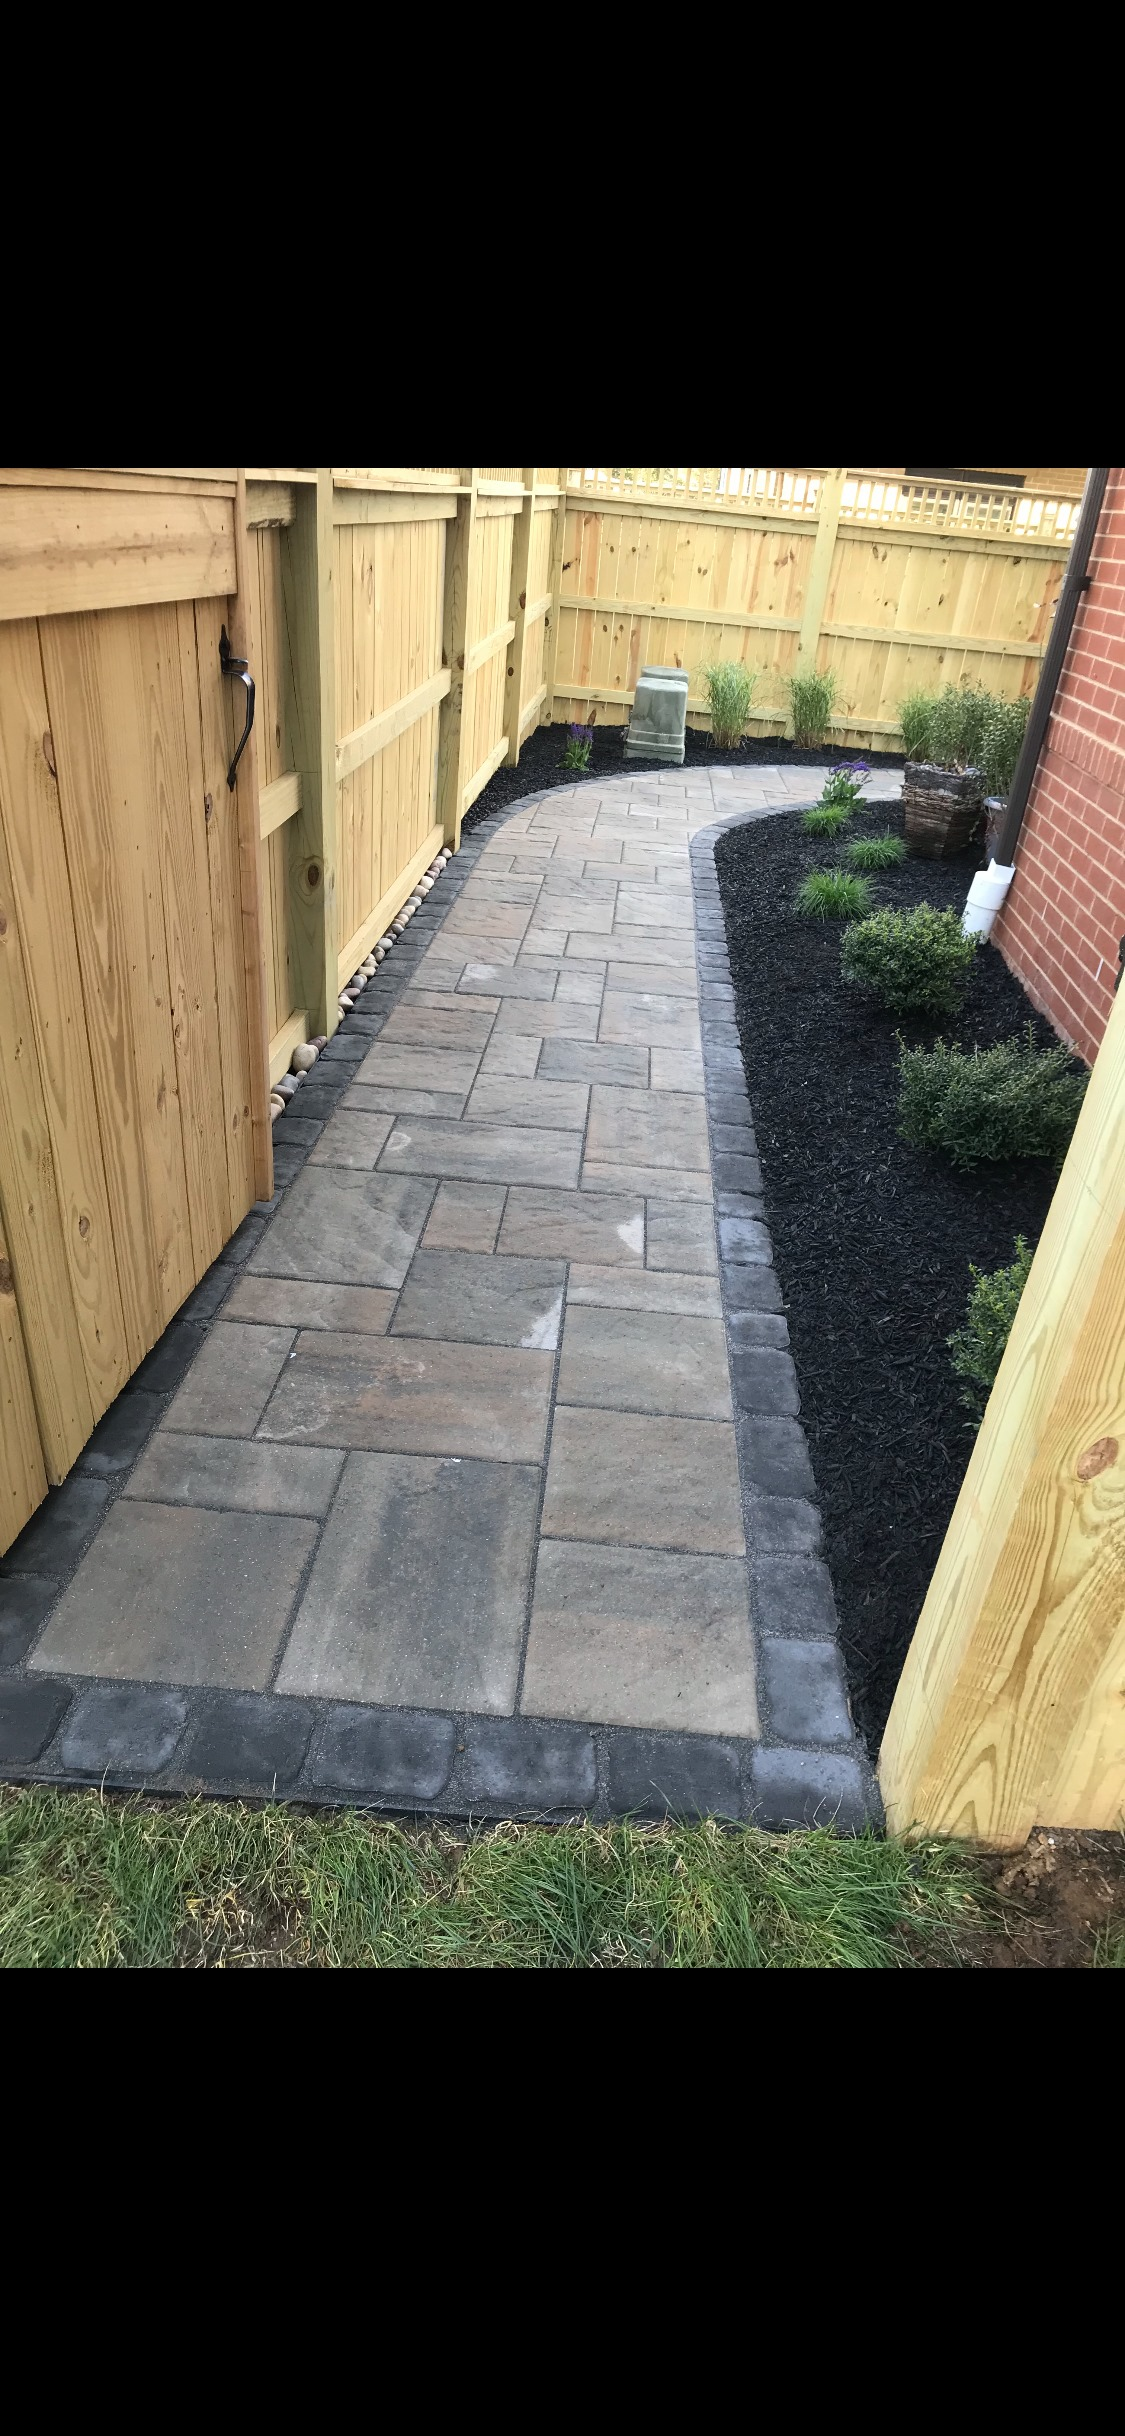 Pine Ridge Residential Hardscaping Project